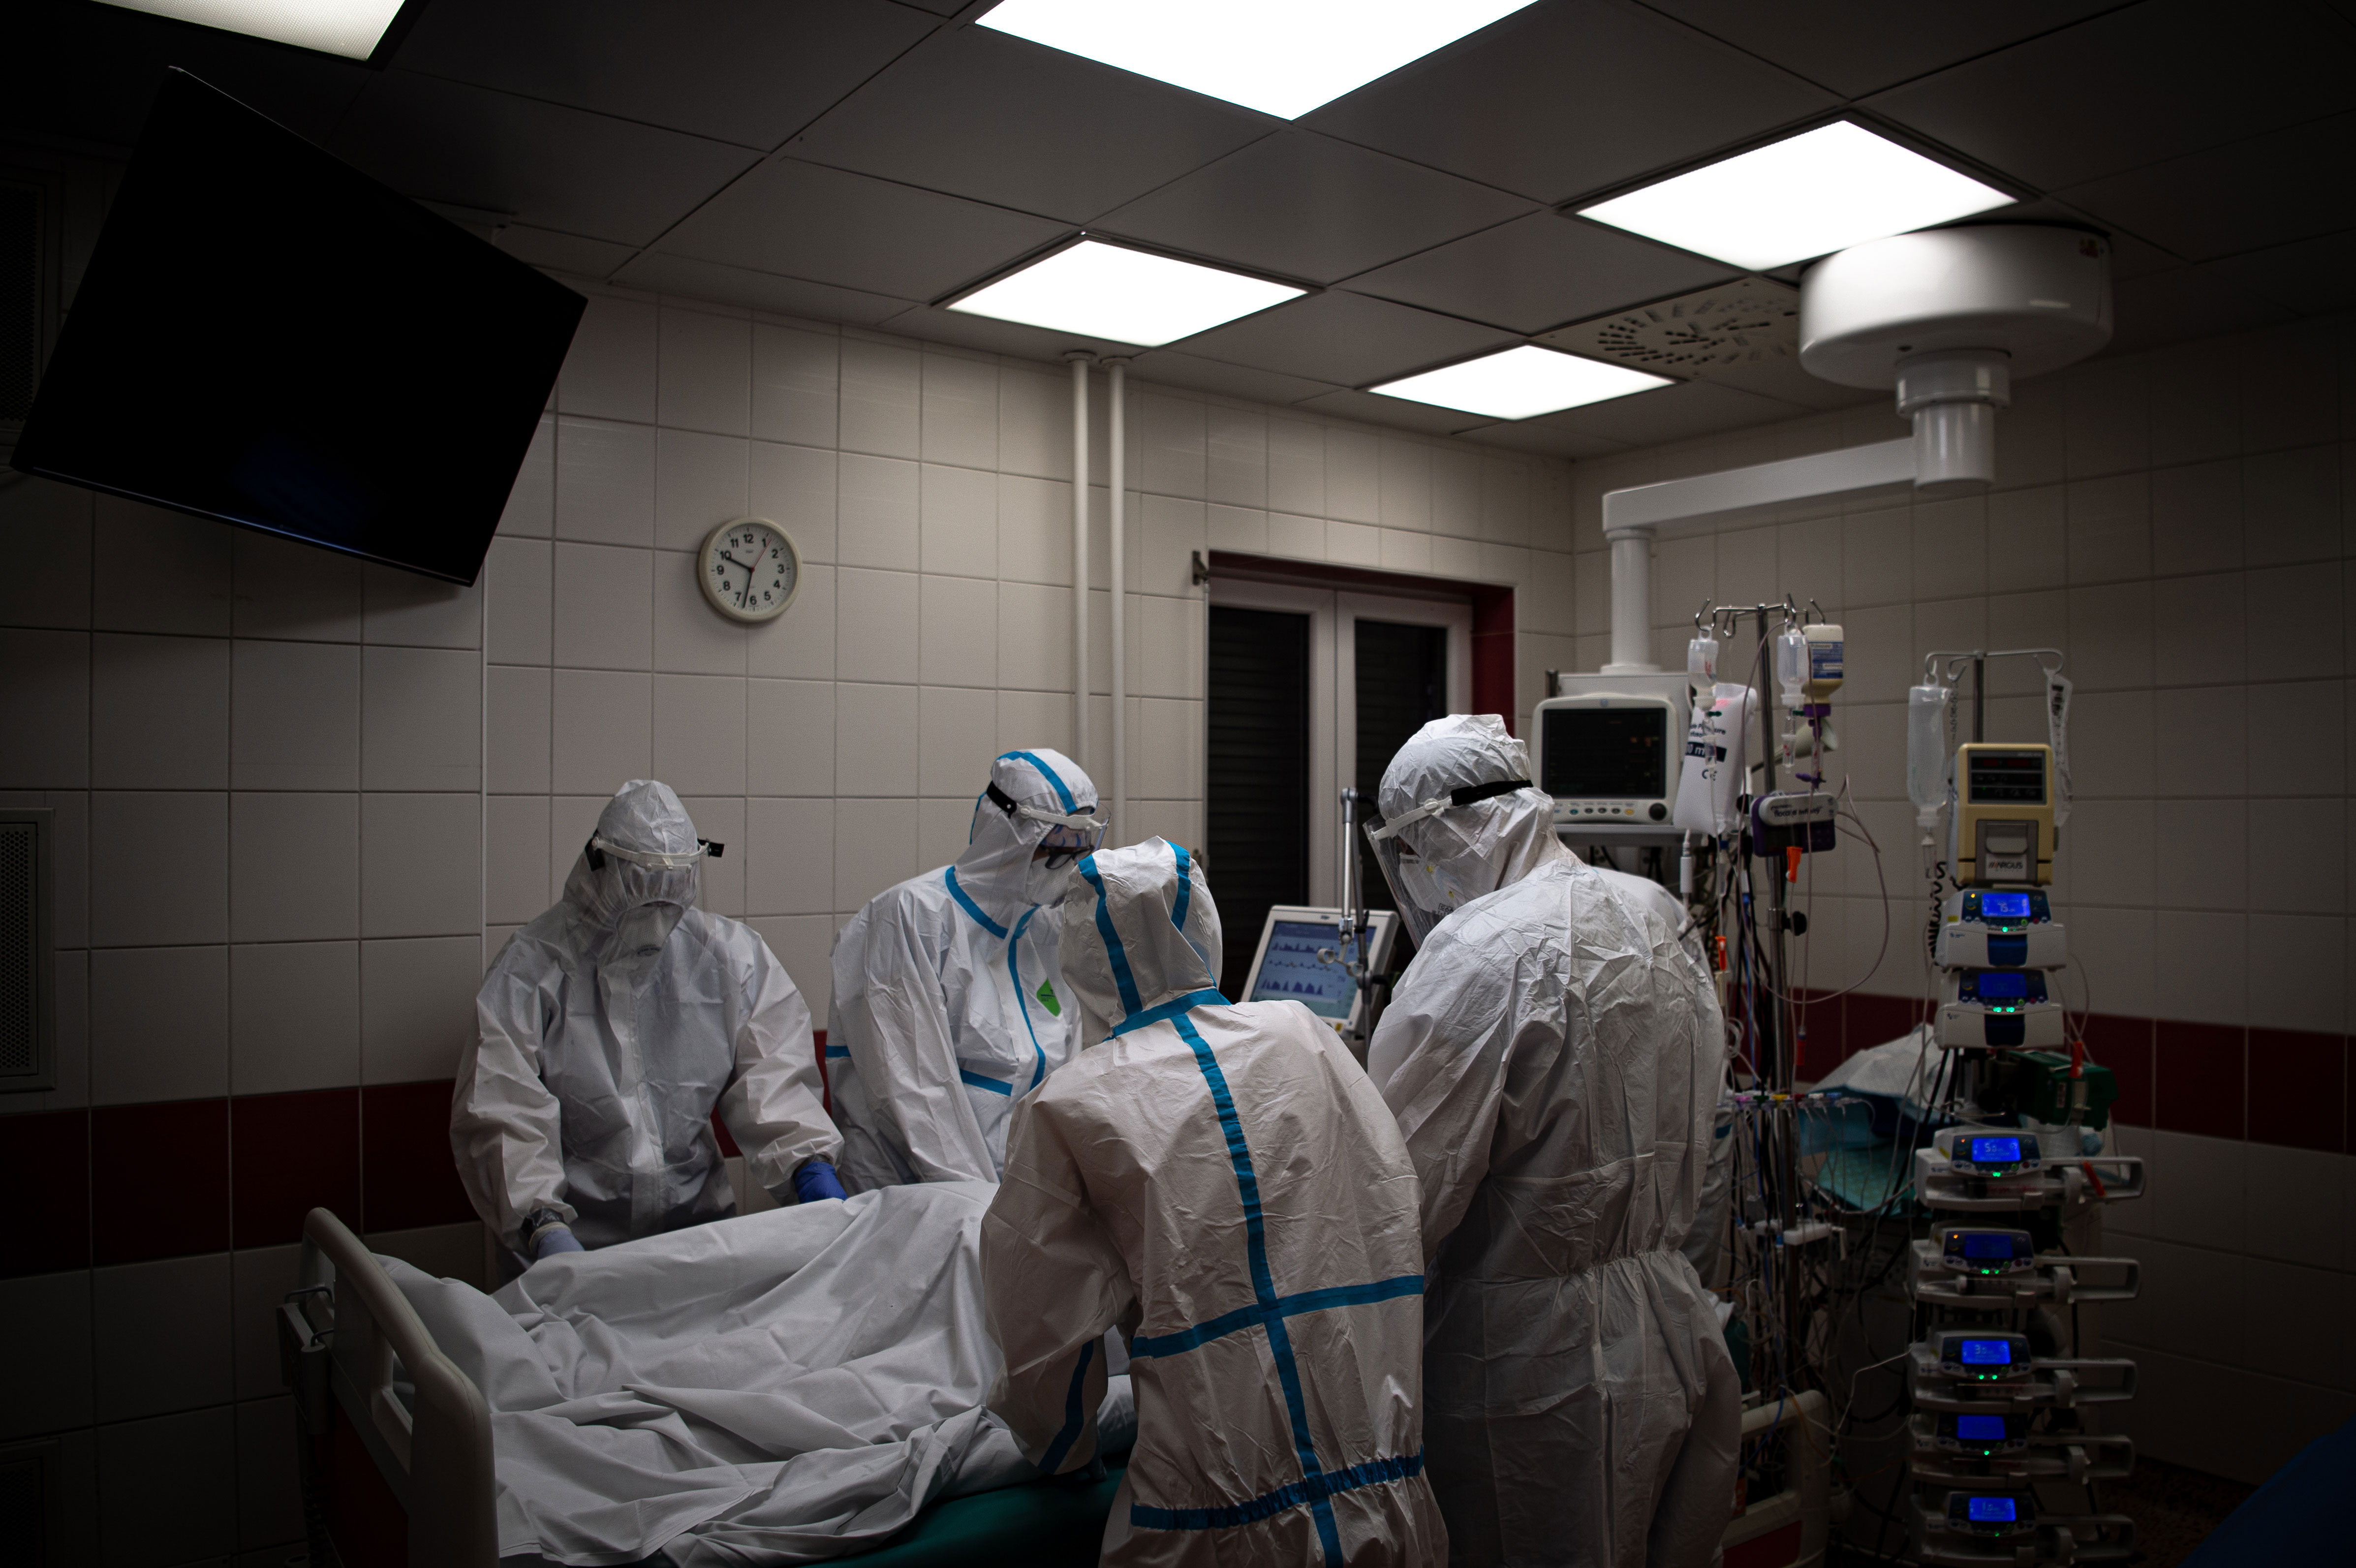 Medical personnel care for a patient with Covid-19 at a hospital in Ostrava, Czech Republic, on October 30.